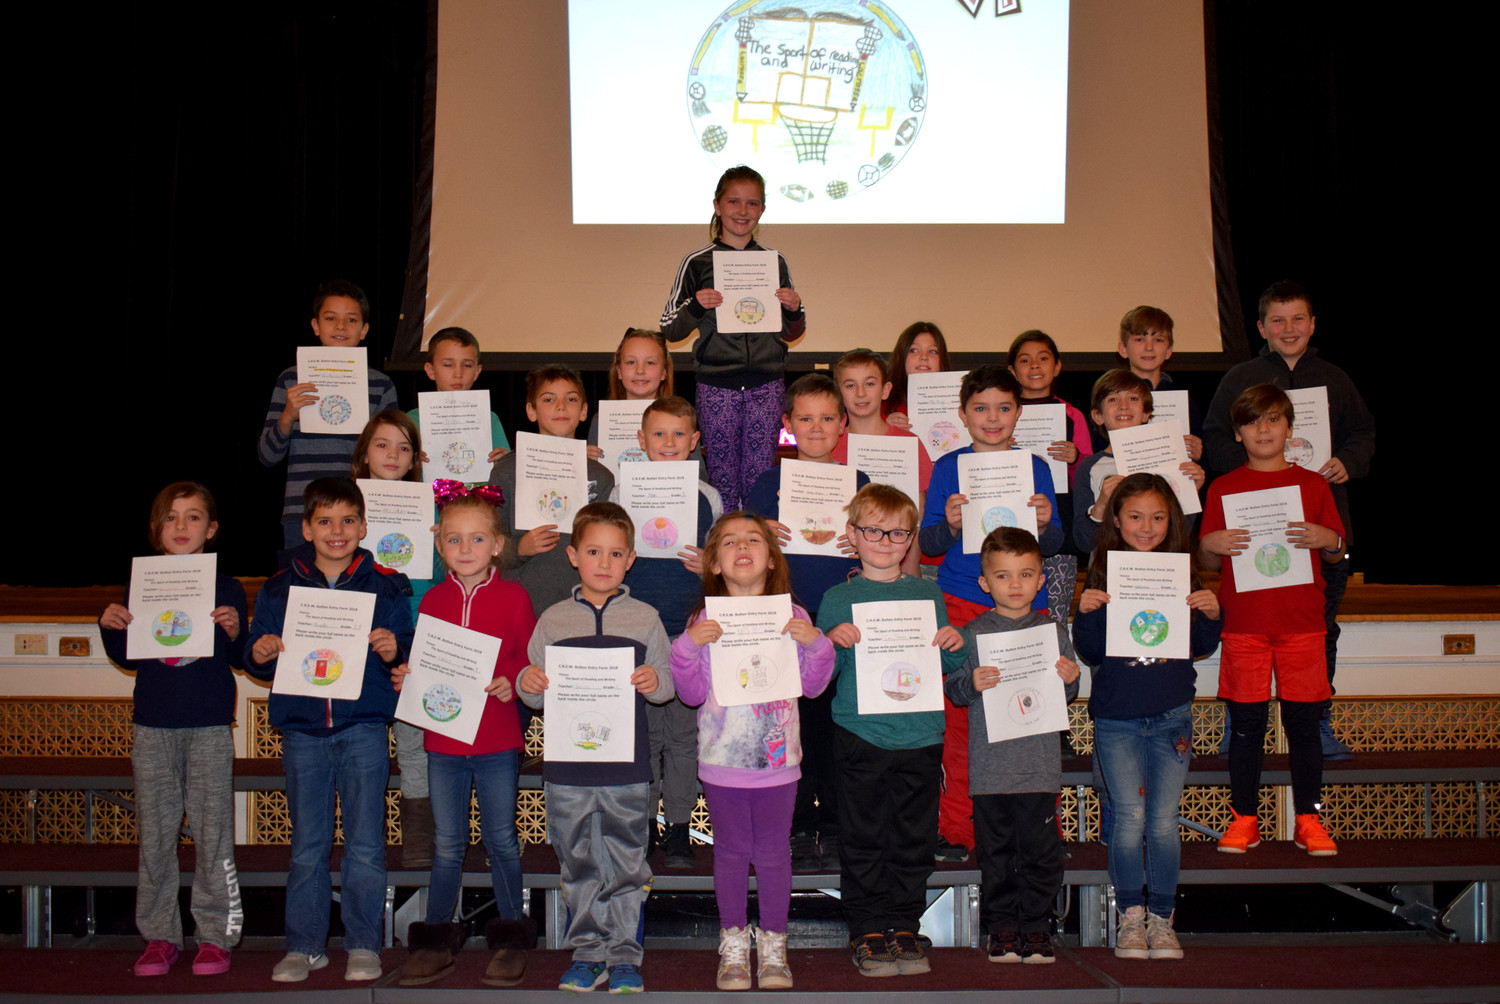 Students participated in drawing the new C.R.E.W. button. During the opening ceremony, the best student buttons from each grade were selected, and the children were called up onstage. The 2018 button contest winner was Avery Fitzpatrick.